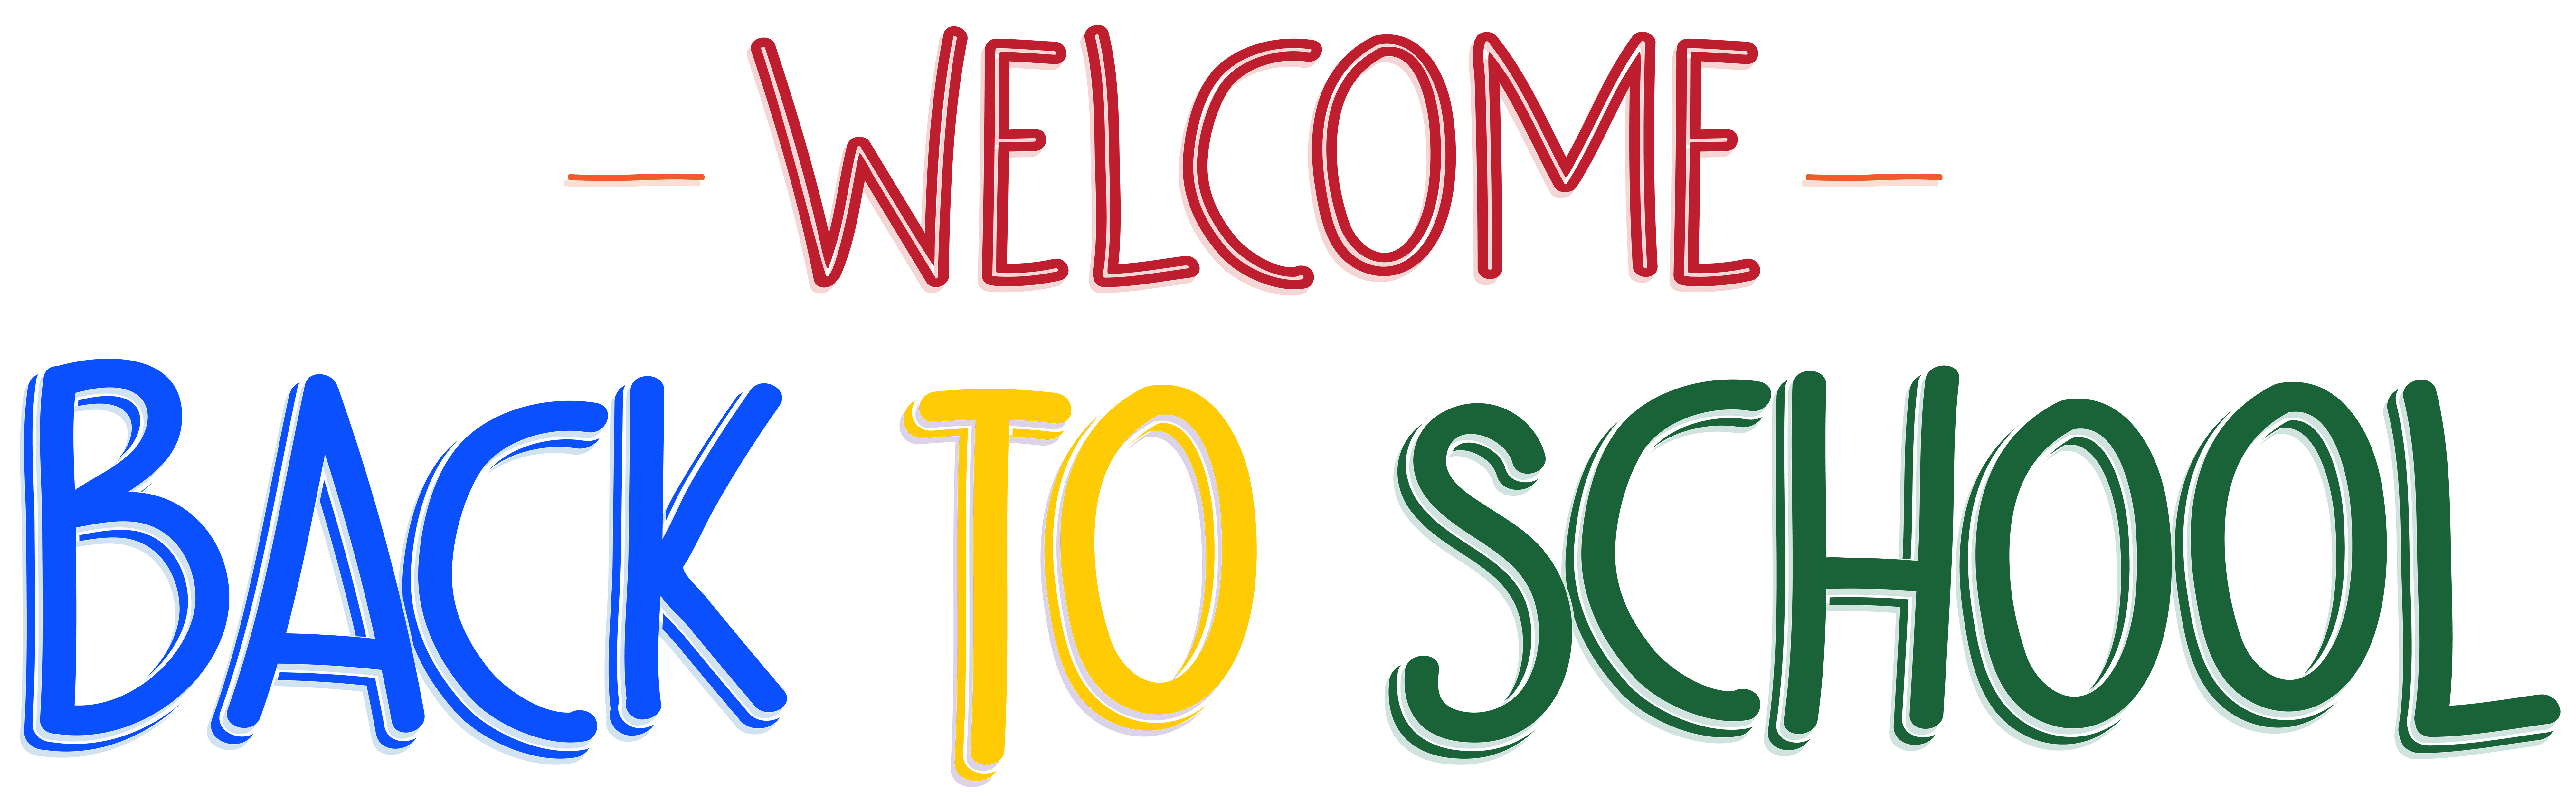 Website clipart welcome. Back to school png